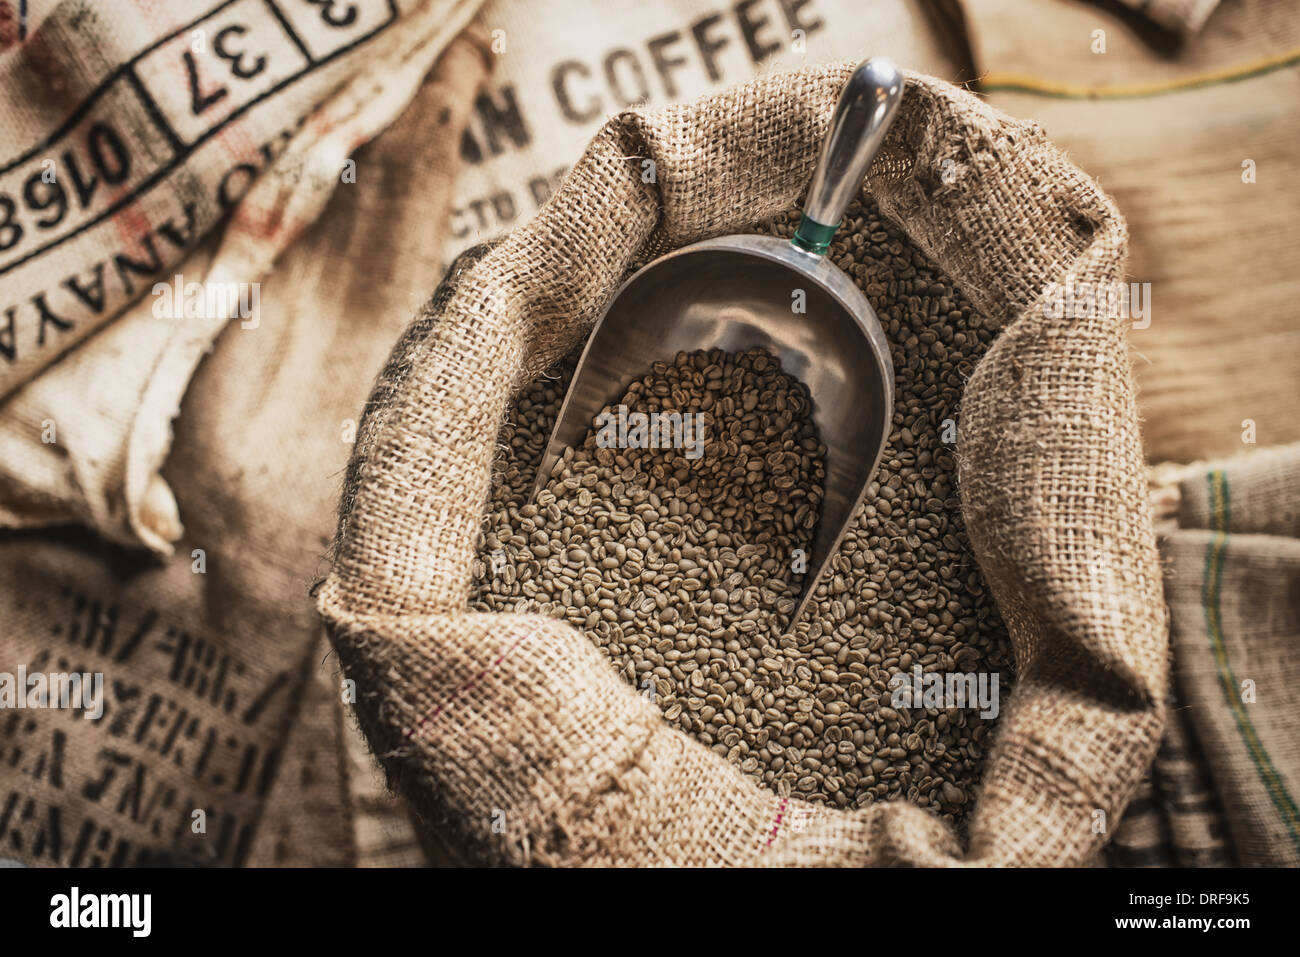 New York state USA Hessian sacks beans coffee bean processing shed Stock Photo